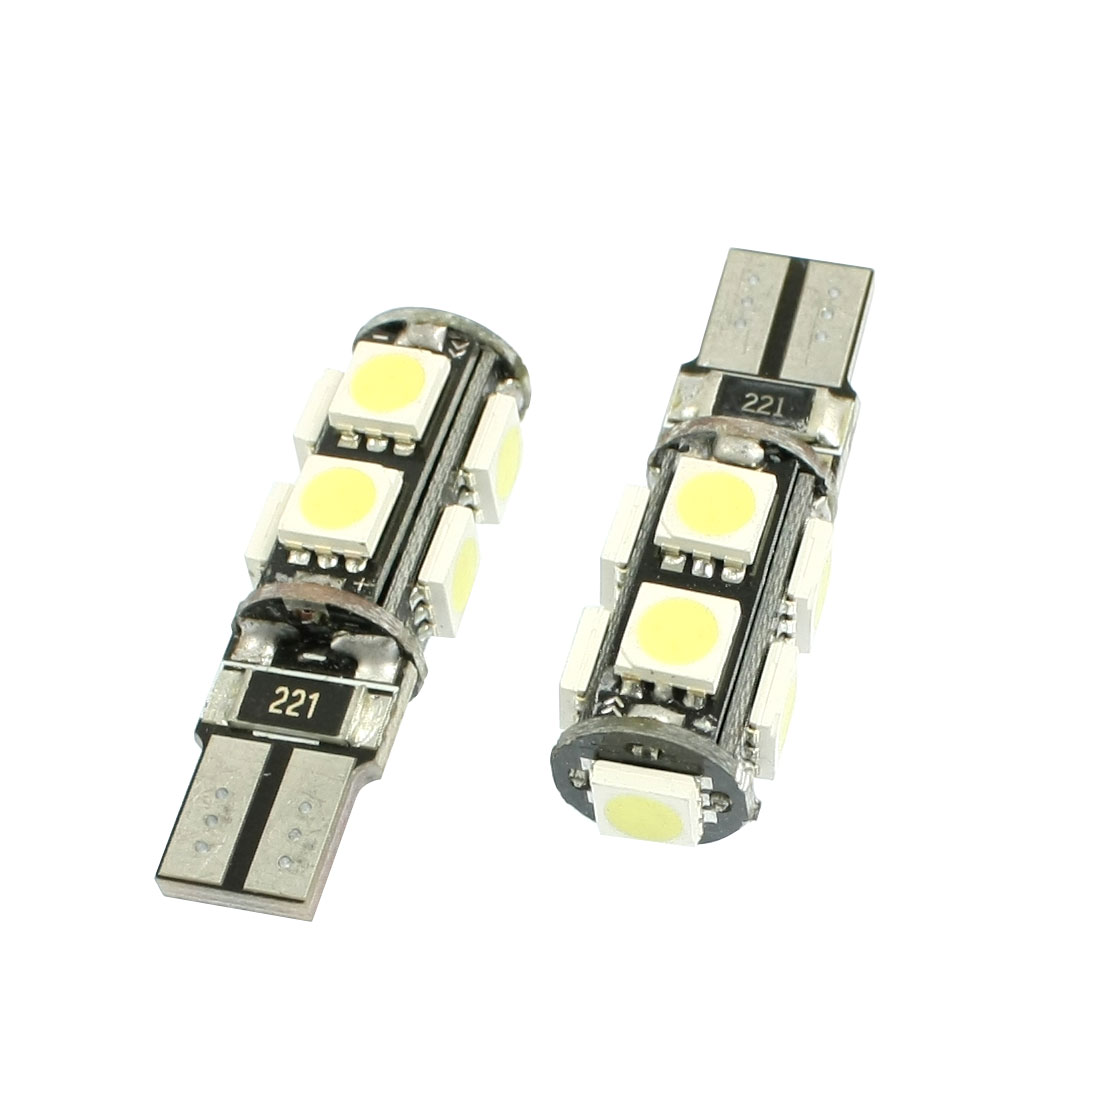 2 Pcs Car T10 194 168 White 5050 SMD 9-LED Wedge Light Bulb Lamp